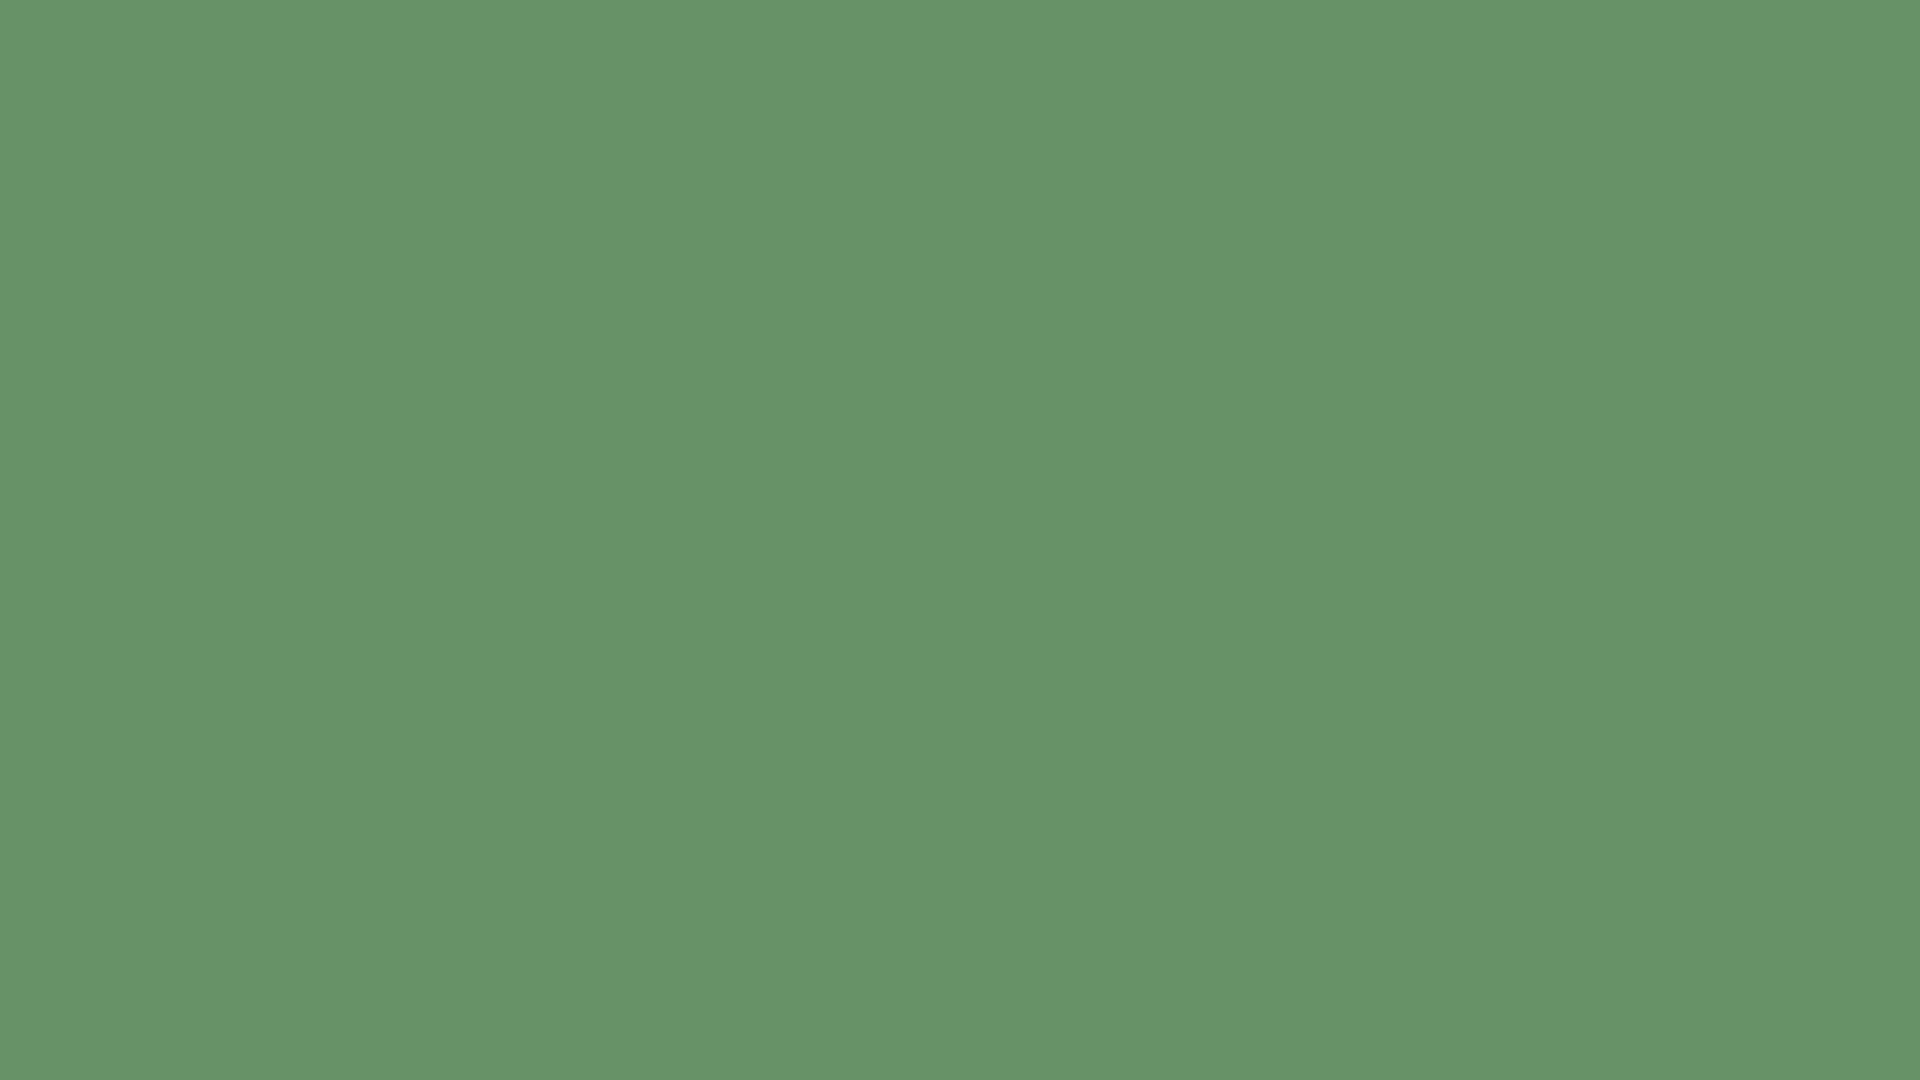 1920x1080 Russian Green Solid Color Background